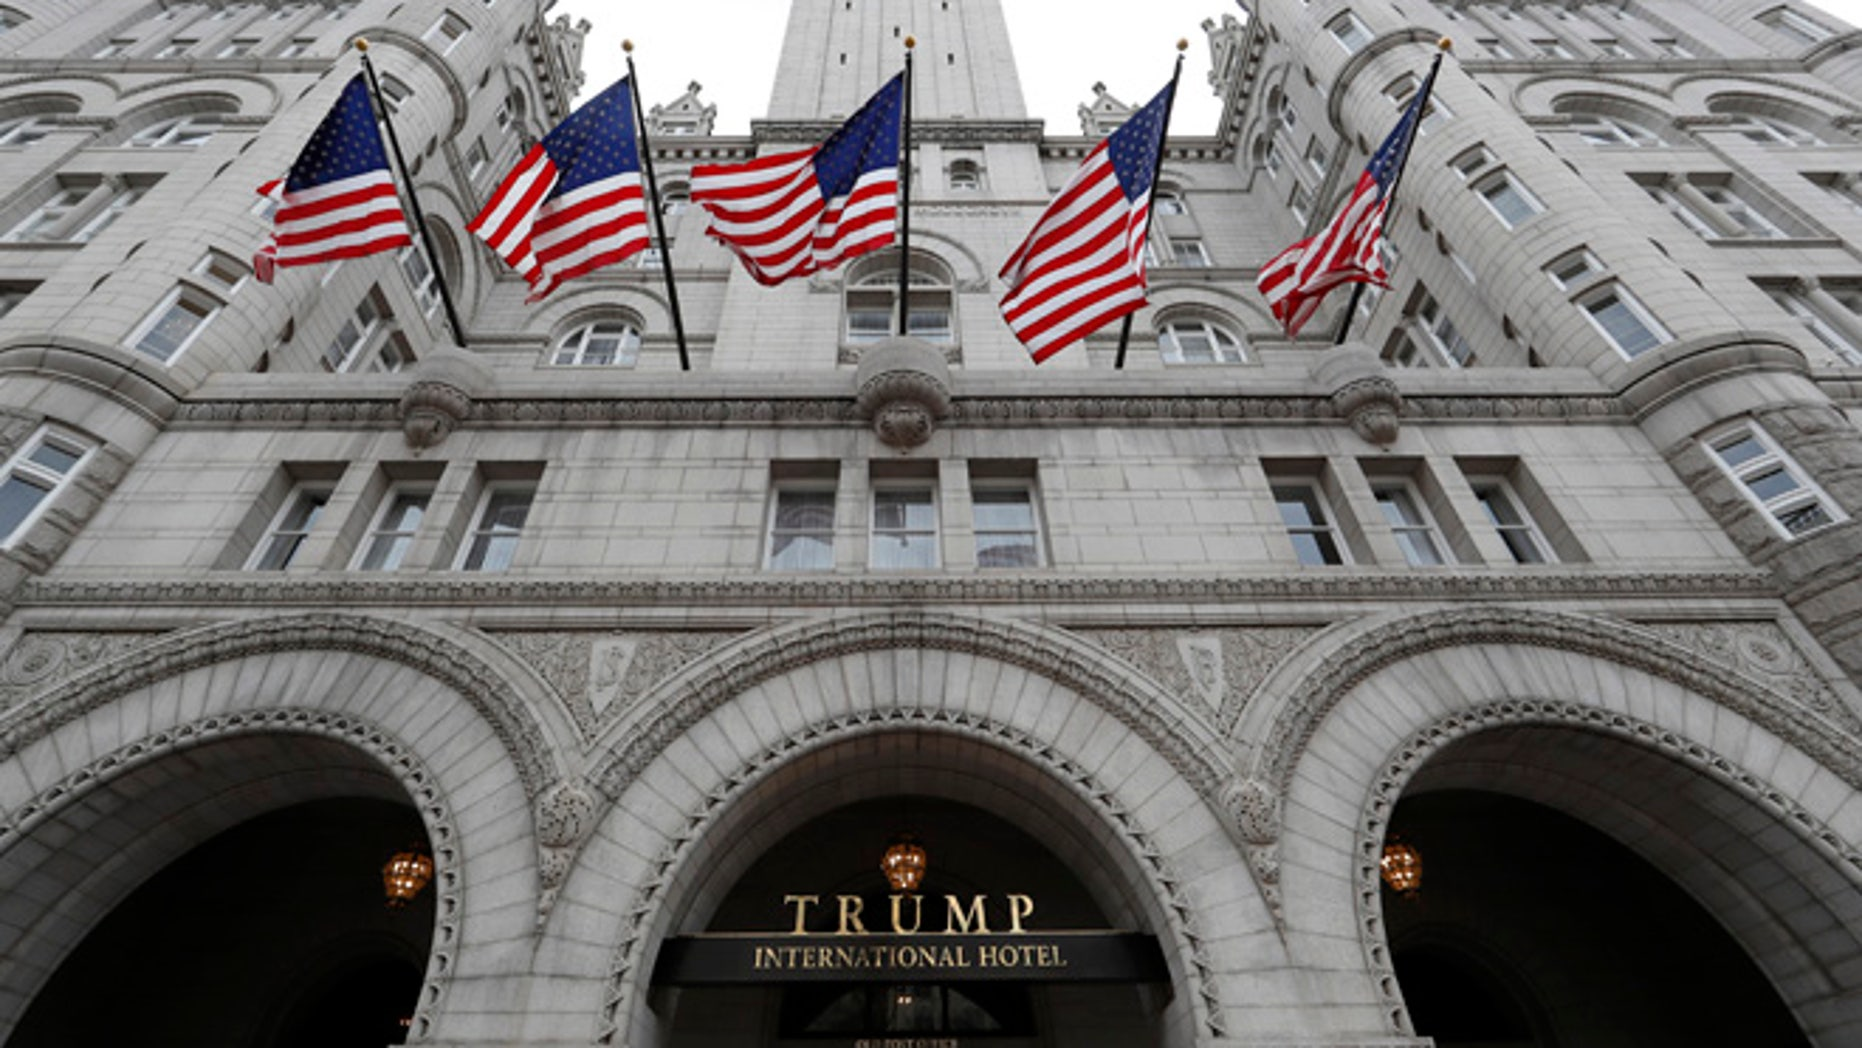 The Trump International Hotel in Washington is seen in this December 2016 photo.